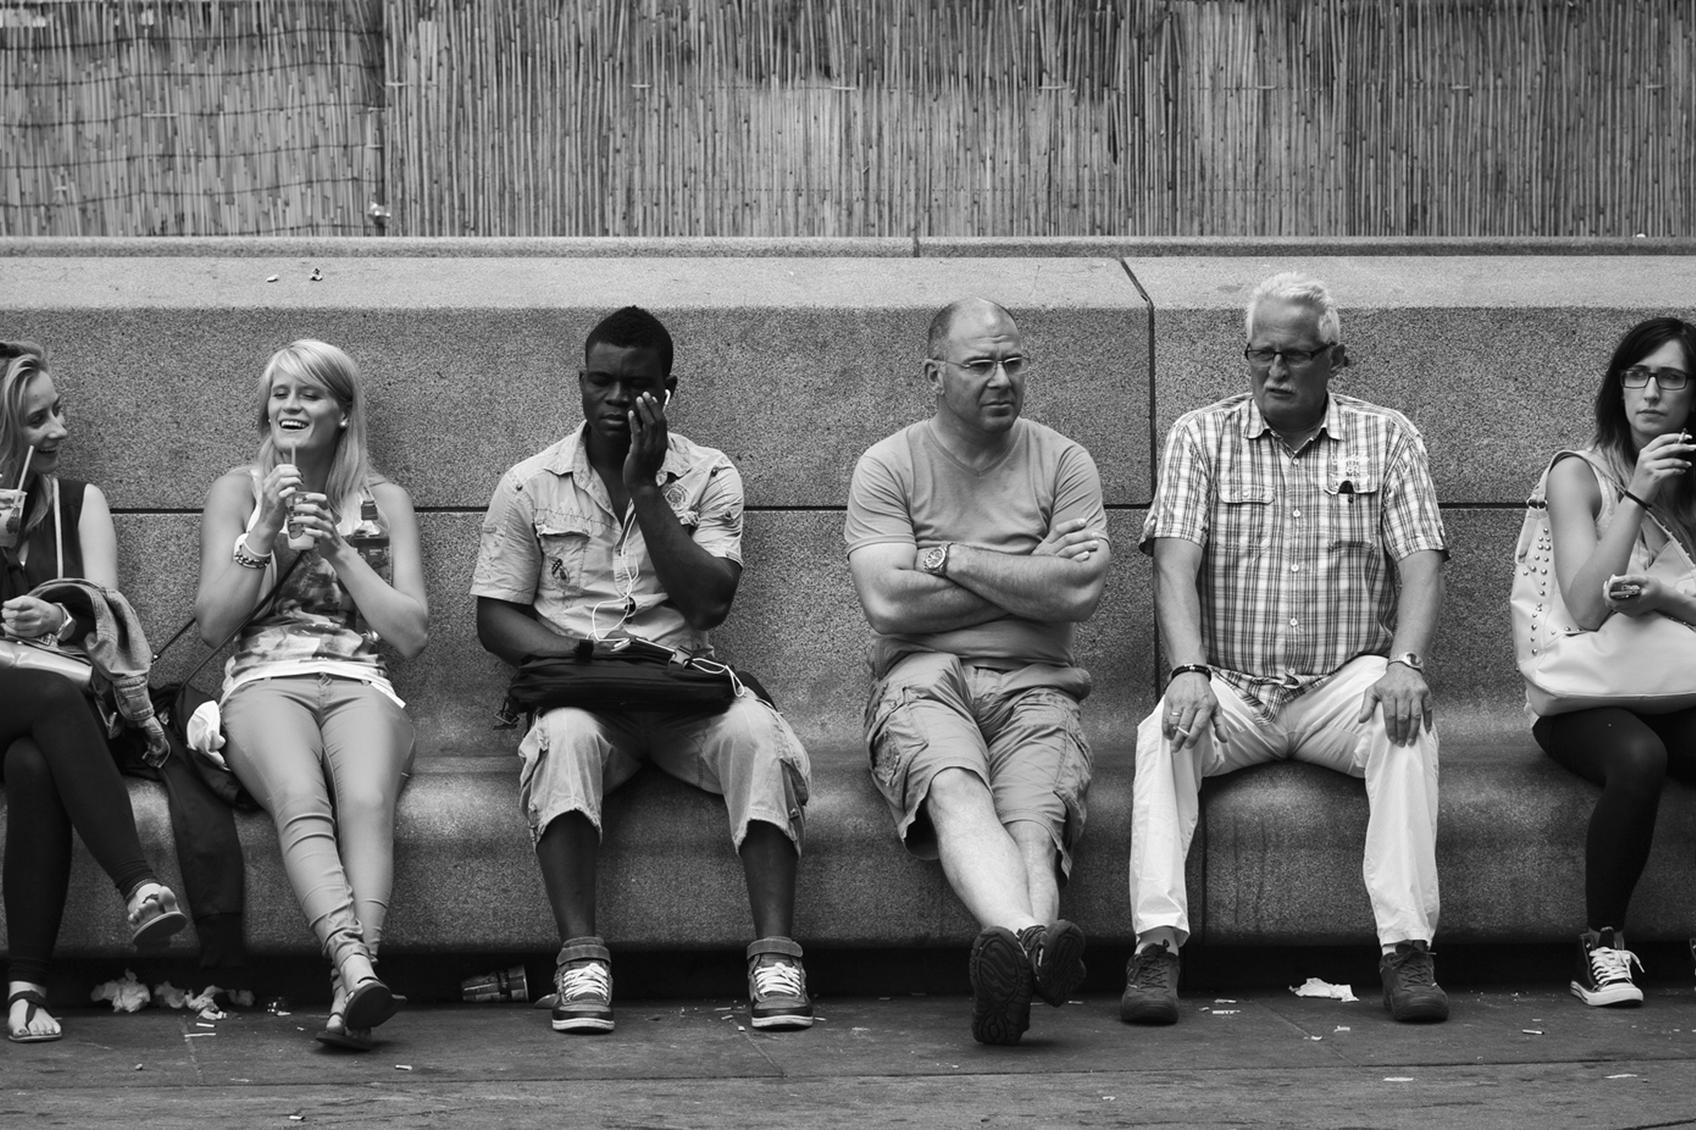 Black and white image of a culturally diverse group of people sitting side by side.